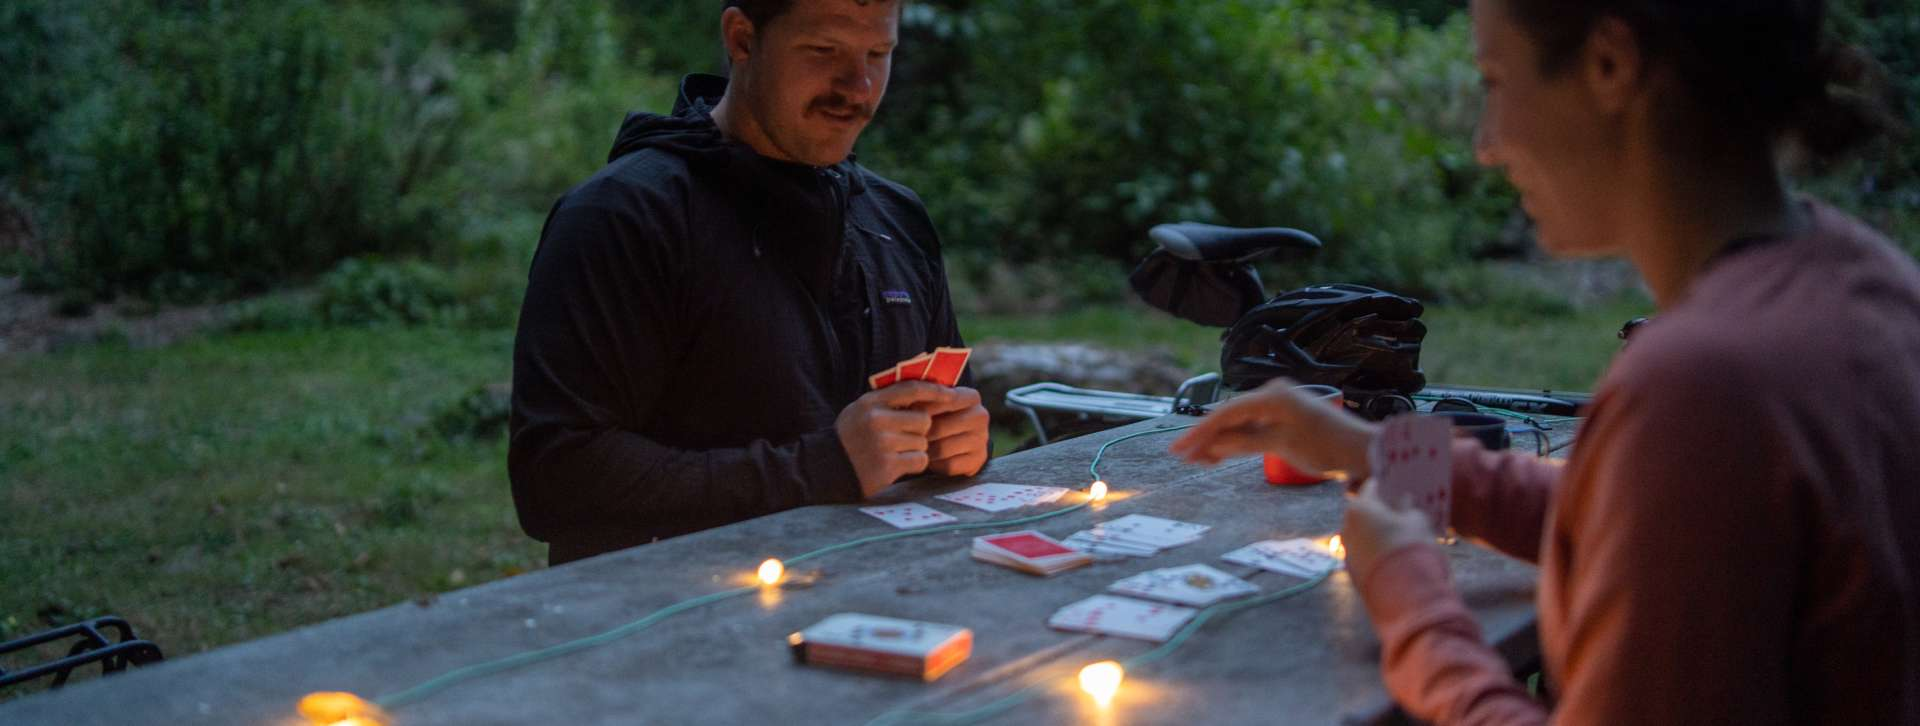 Couple play cards at picnic table in Saltwater State Park